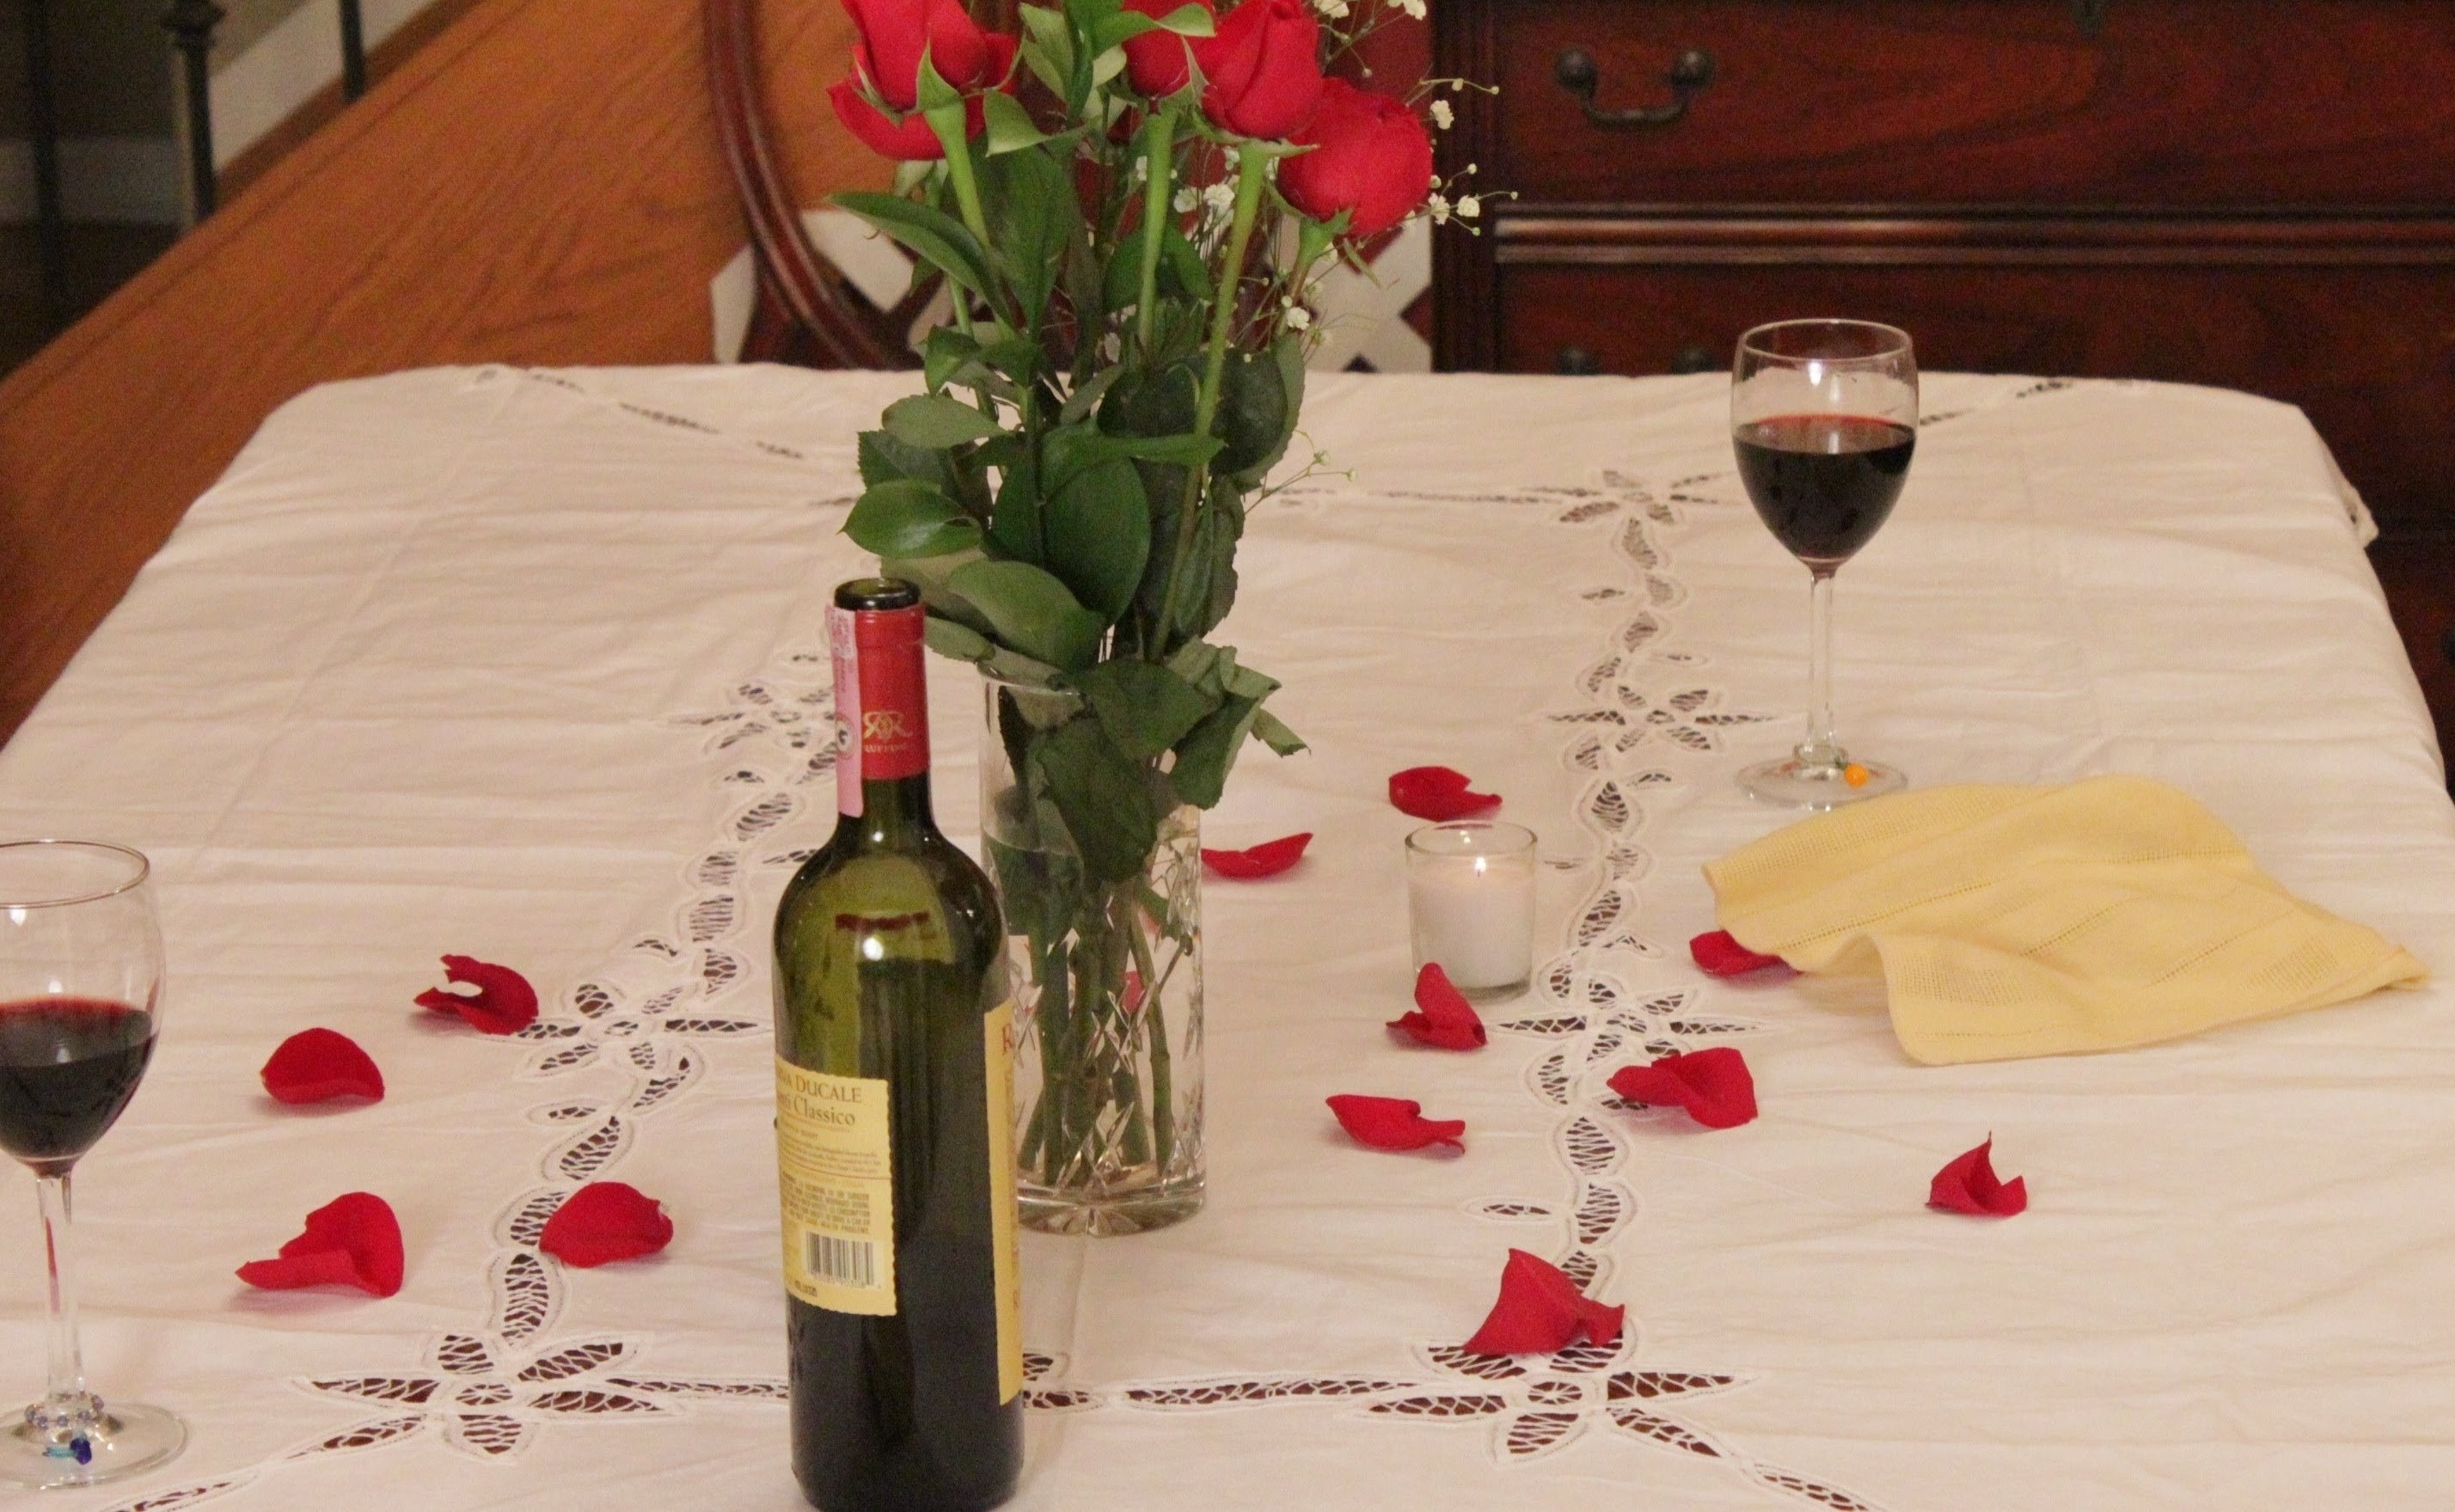 10 Wonderful Romantic Dinner For Two Ideas valentines day romantic dinner for two ribeye steaks with sherry 1